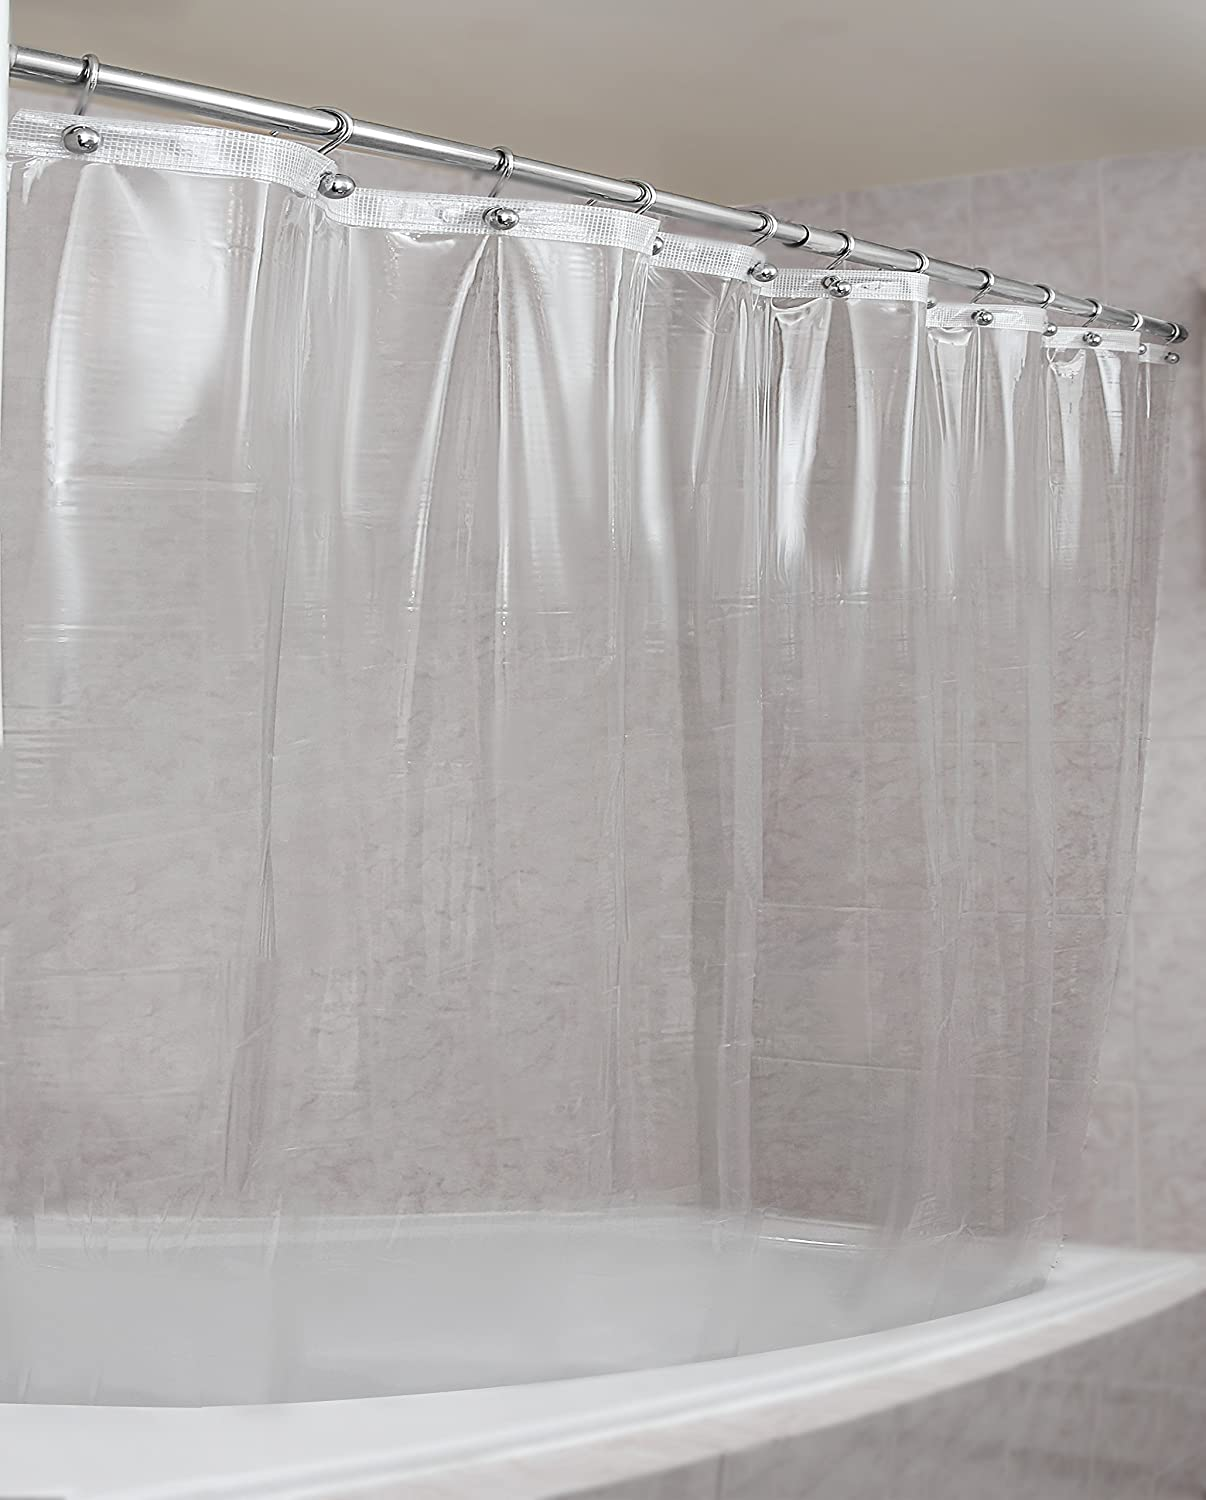 Merveilleux Amazon.com: Strongest Mildew Resistant Shower Curtain Liner On The  Market 100% Anti Bacterial 10 Gauge Heavy Duty Liner Waterproof 72x72  Inches Clear: Home ...